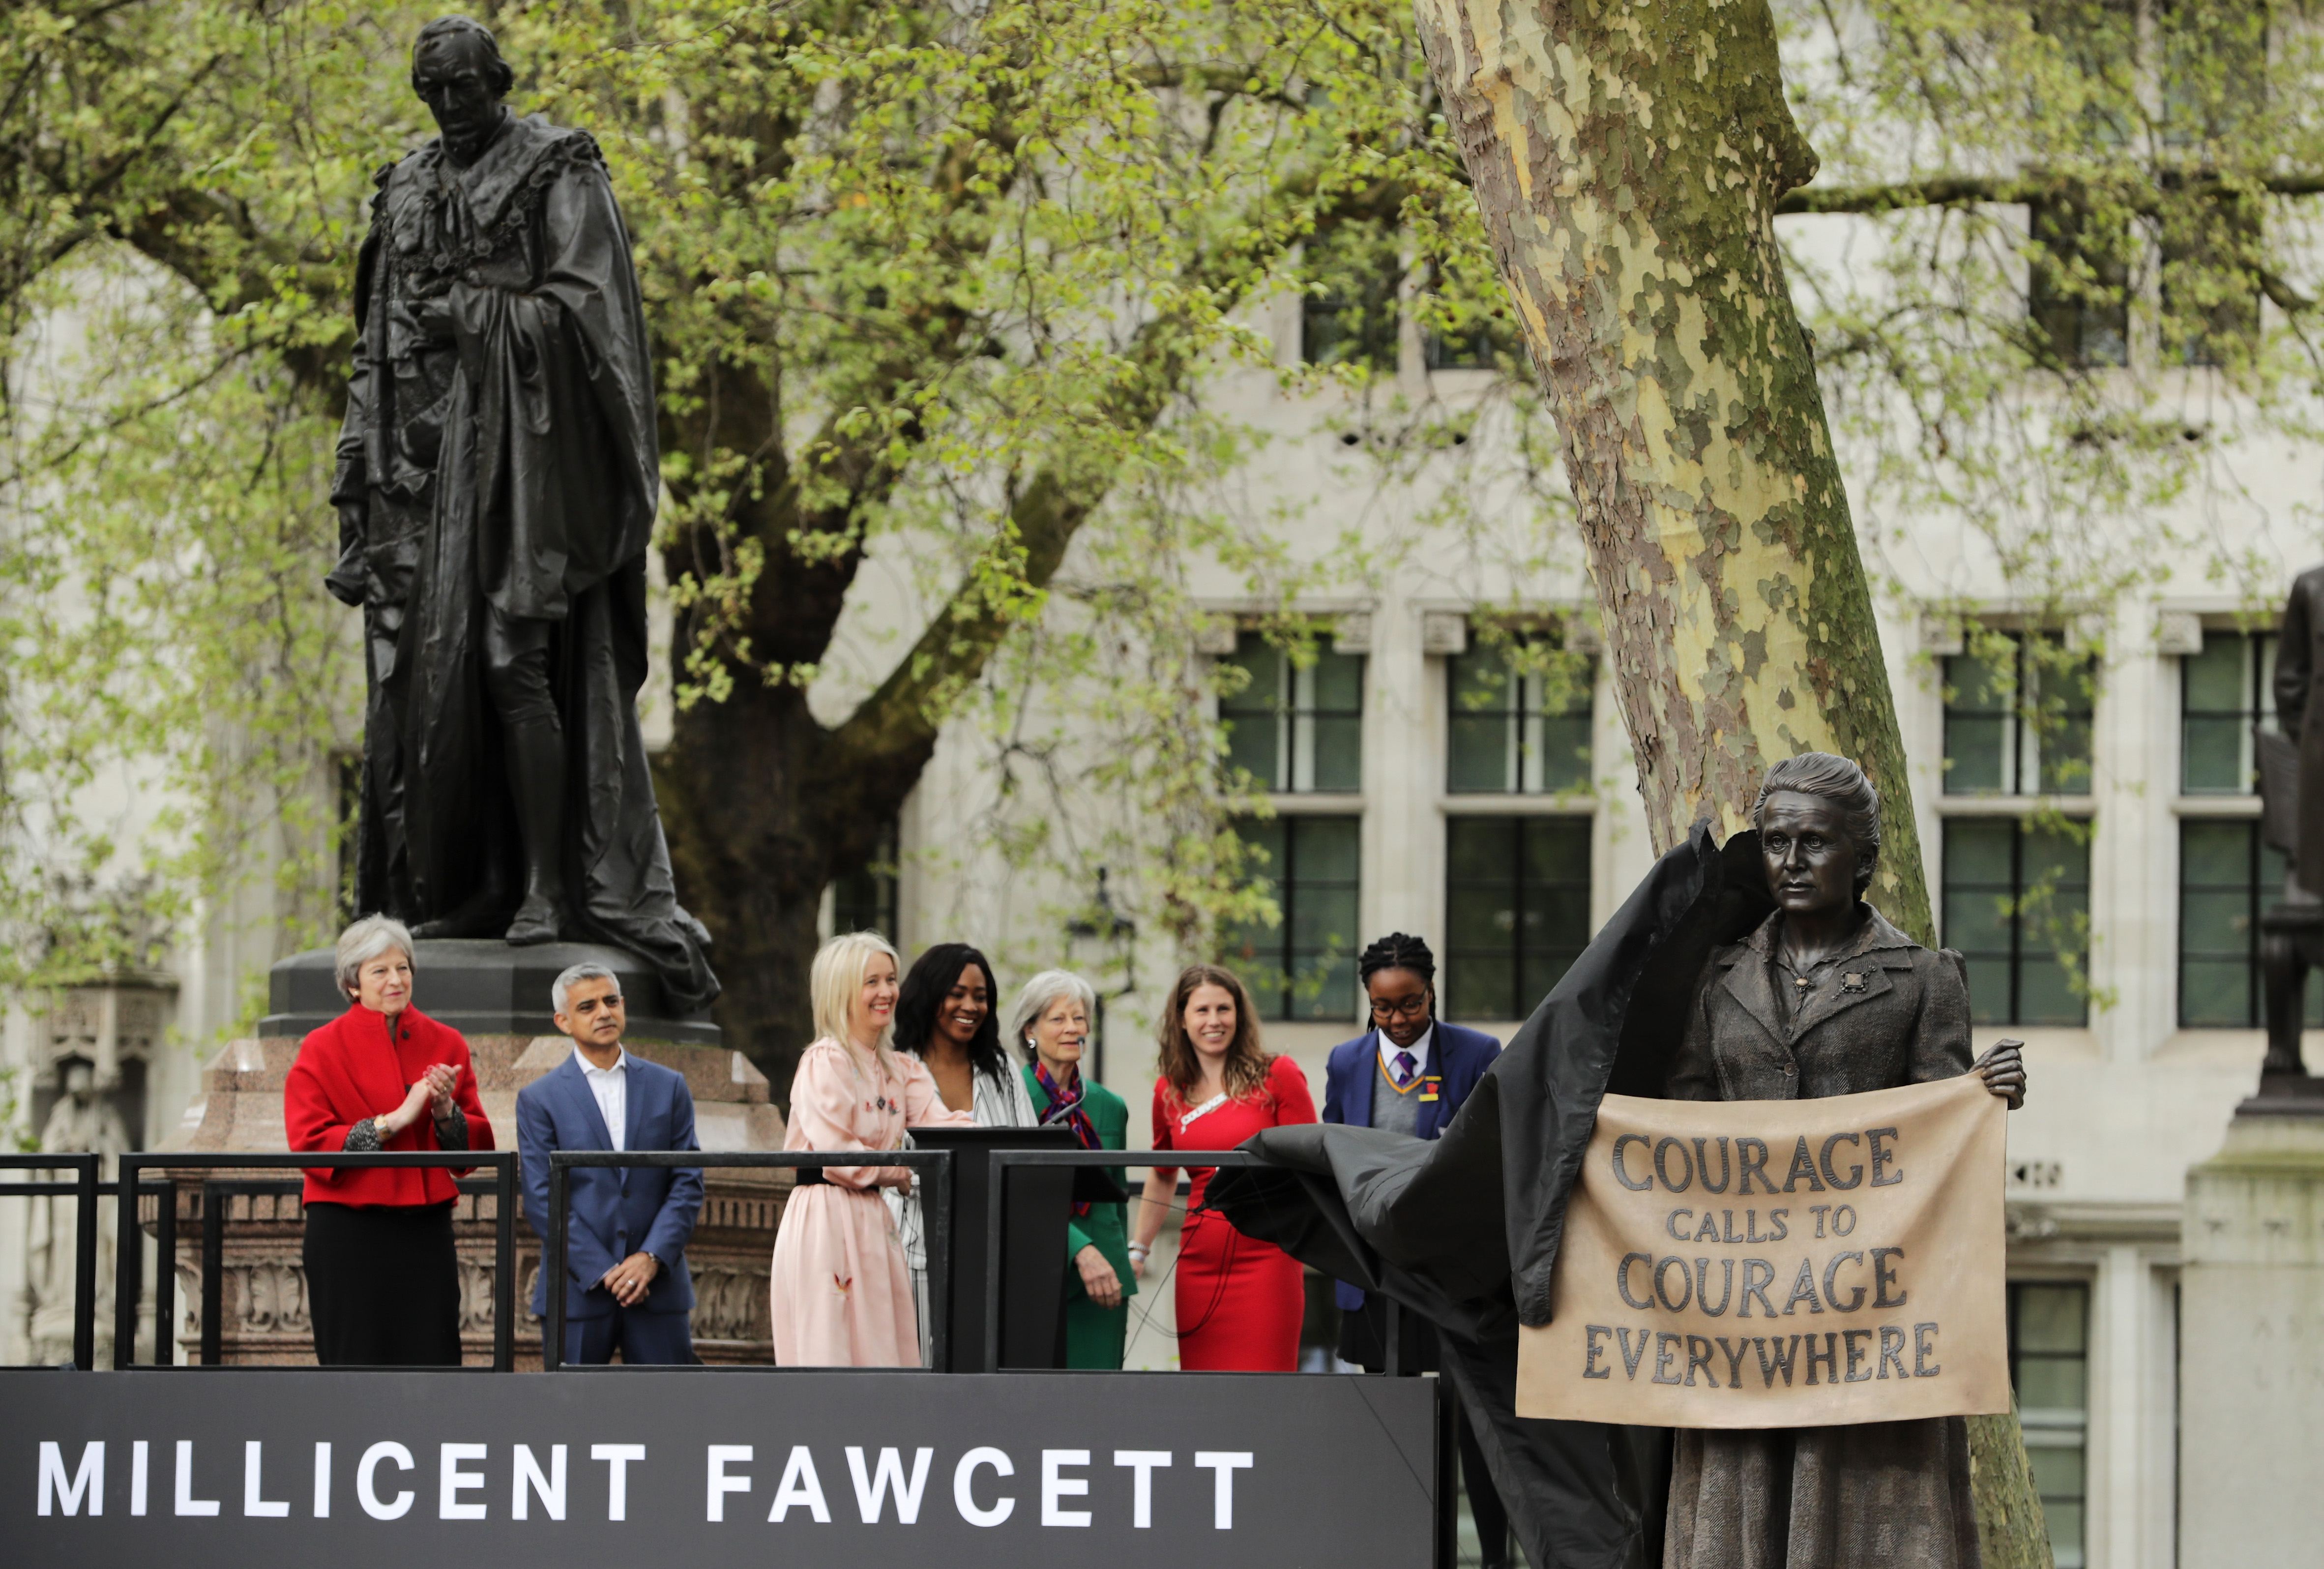 Black veil is pulled off statue to reveal Millicent Fawcett's likeness